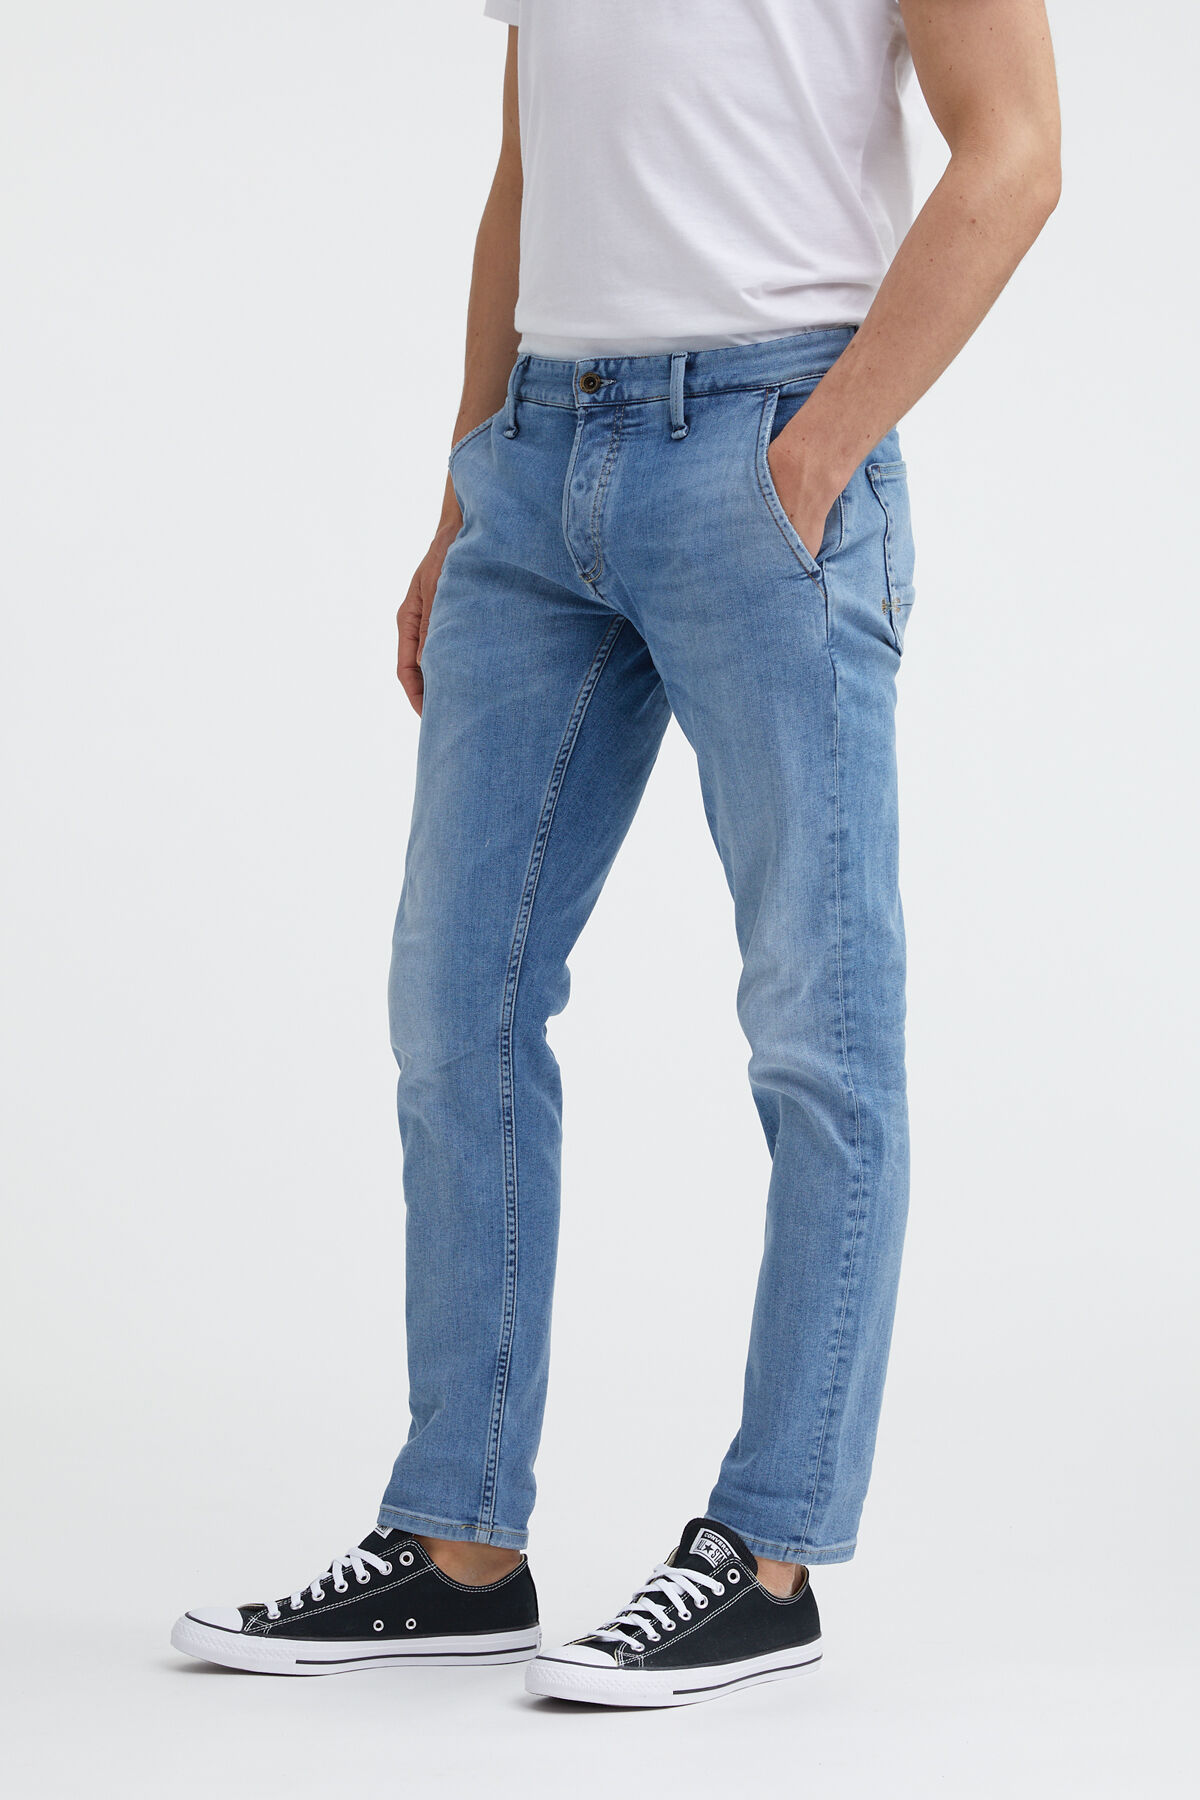 YORK Organic Cotton Denim - Slim, Tapered Fit